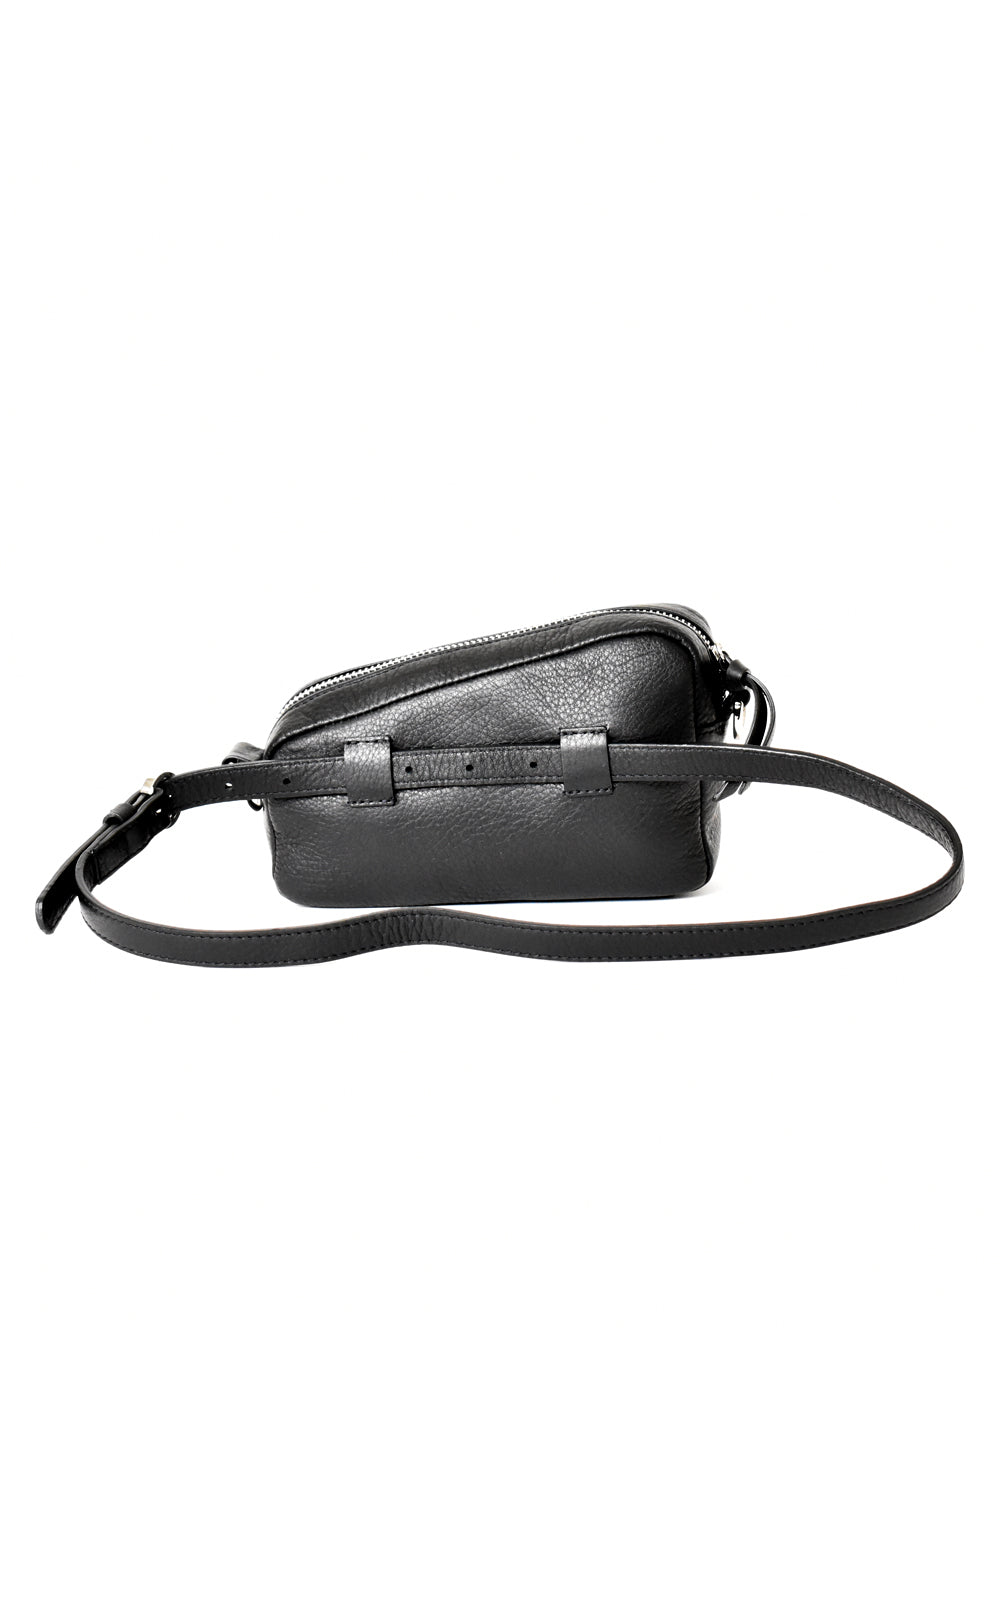 Black H-ology Leather Belt Bag with Removable Shoulder Strap Back